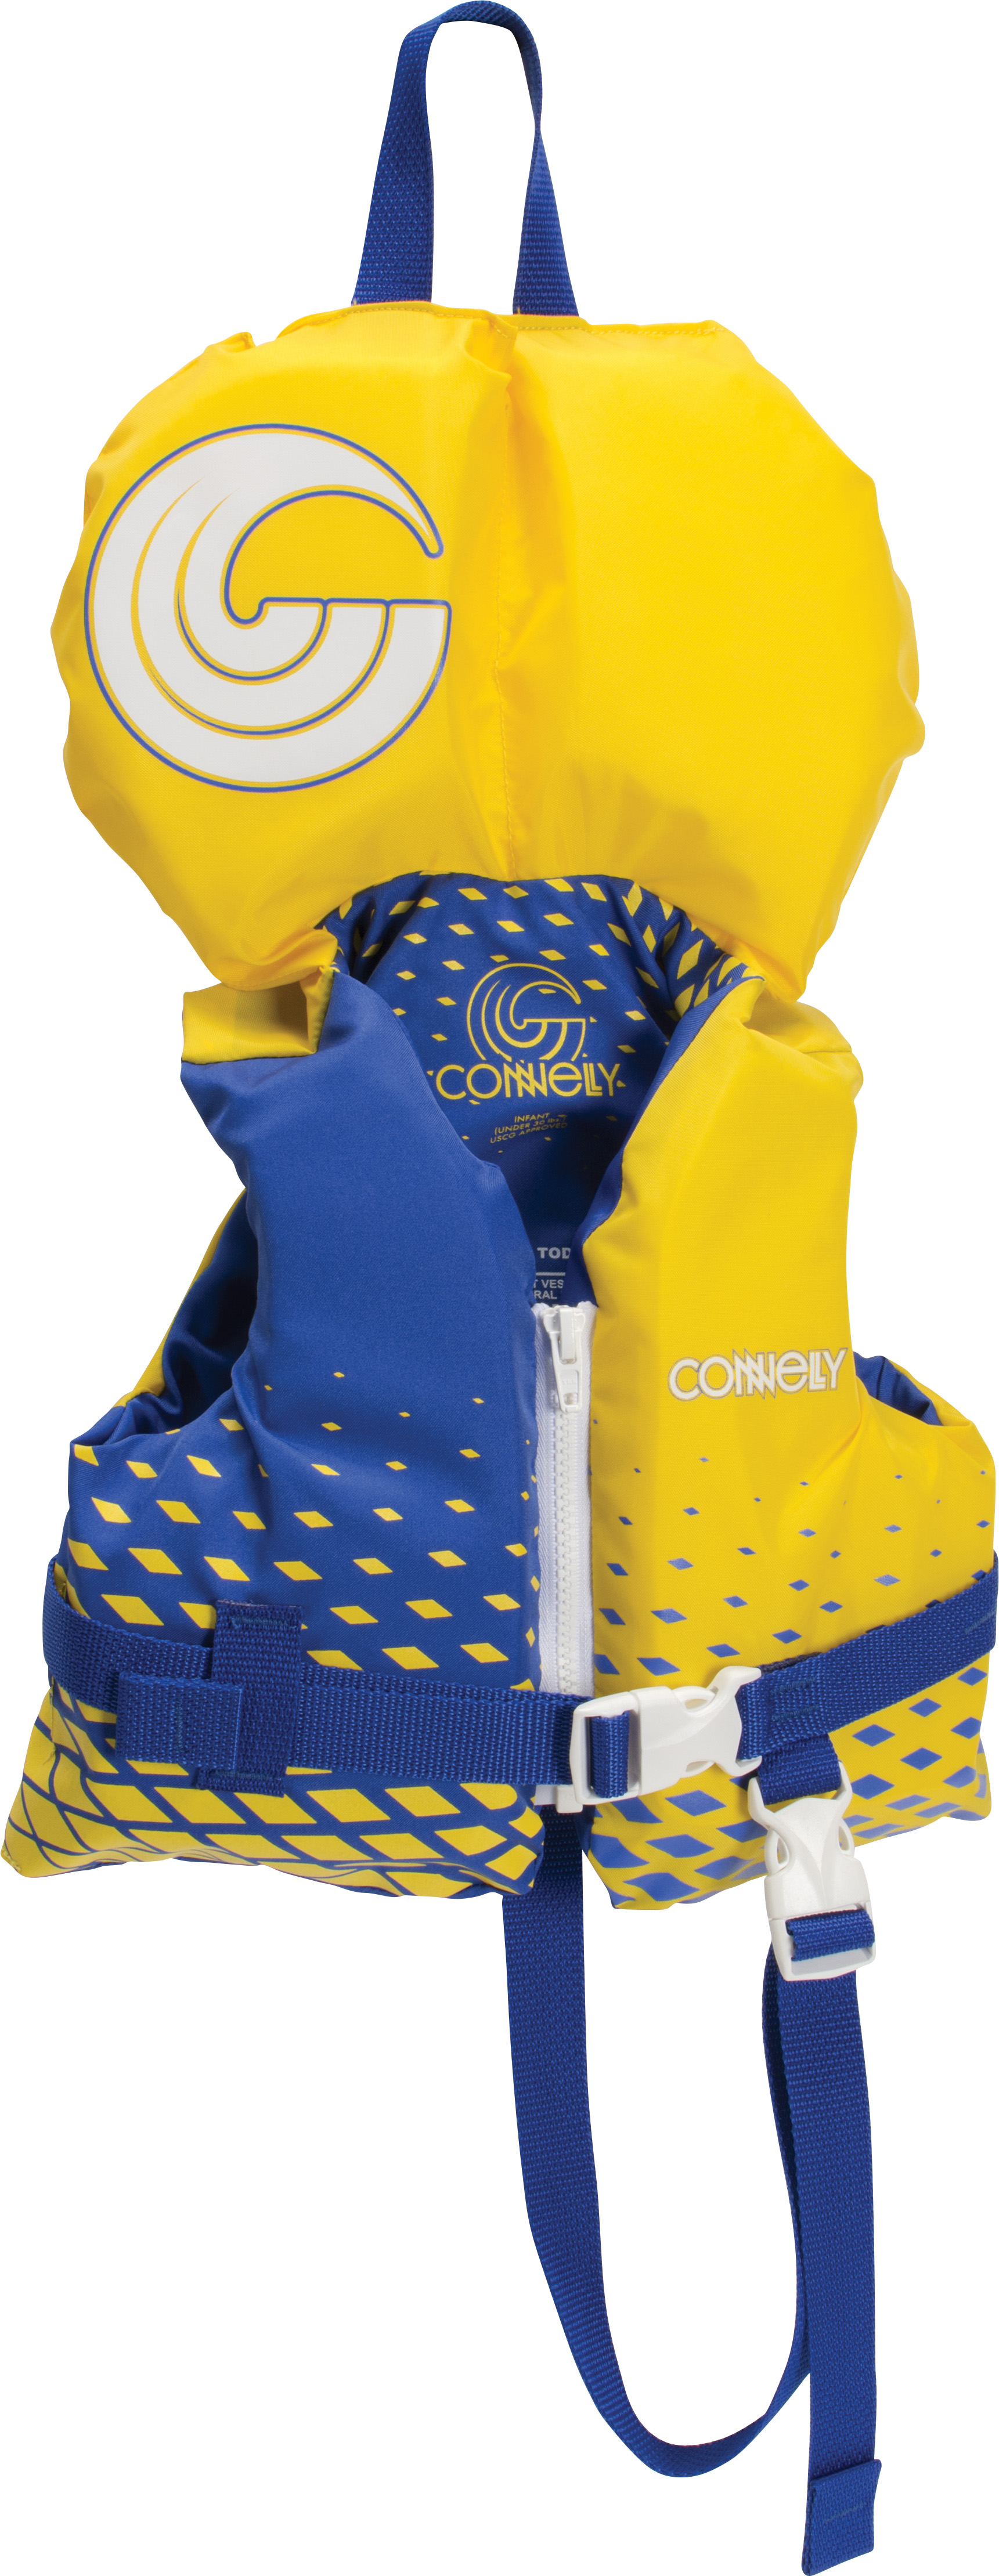 BOY'S INFANT HINGE NYLON VEST CONNELLY 2017